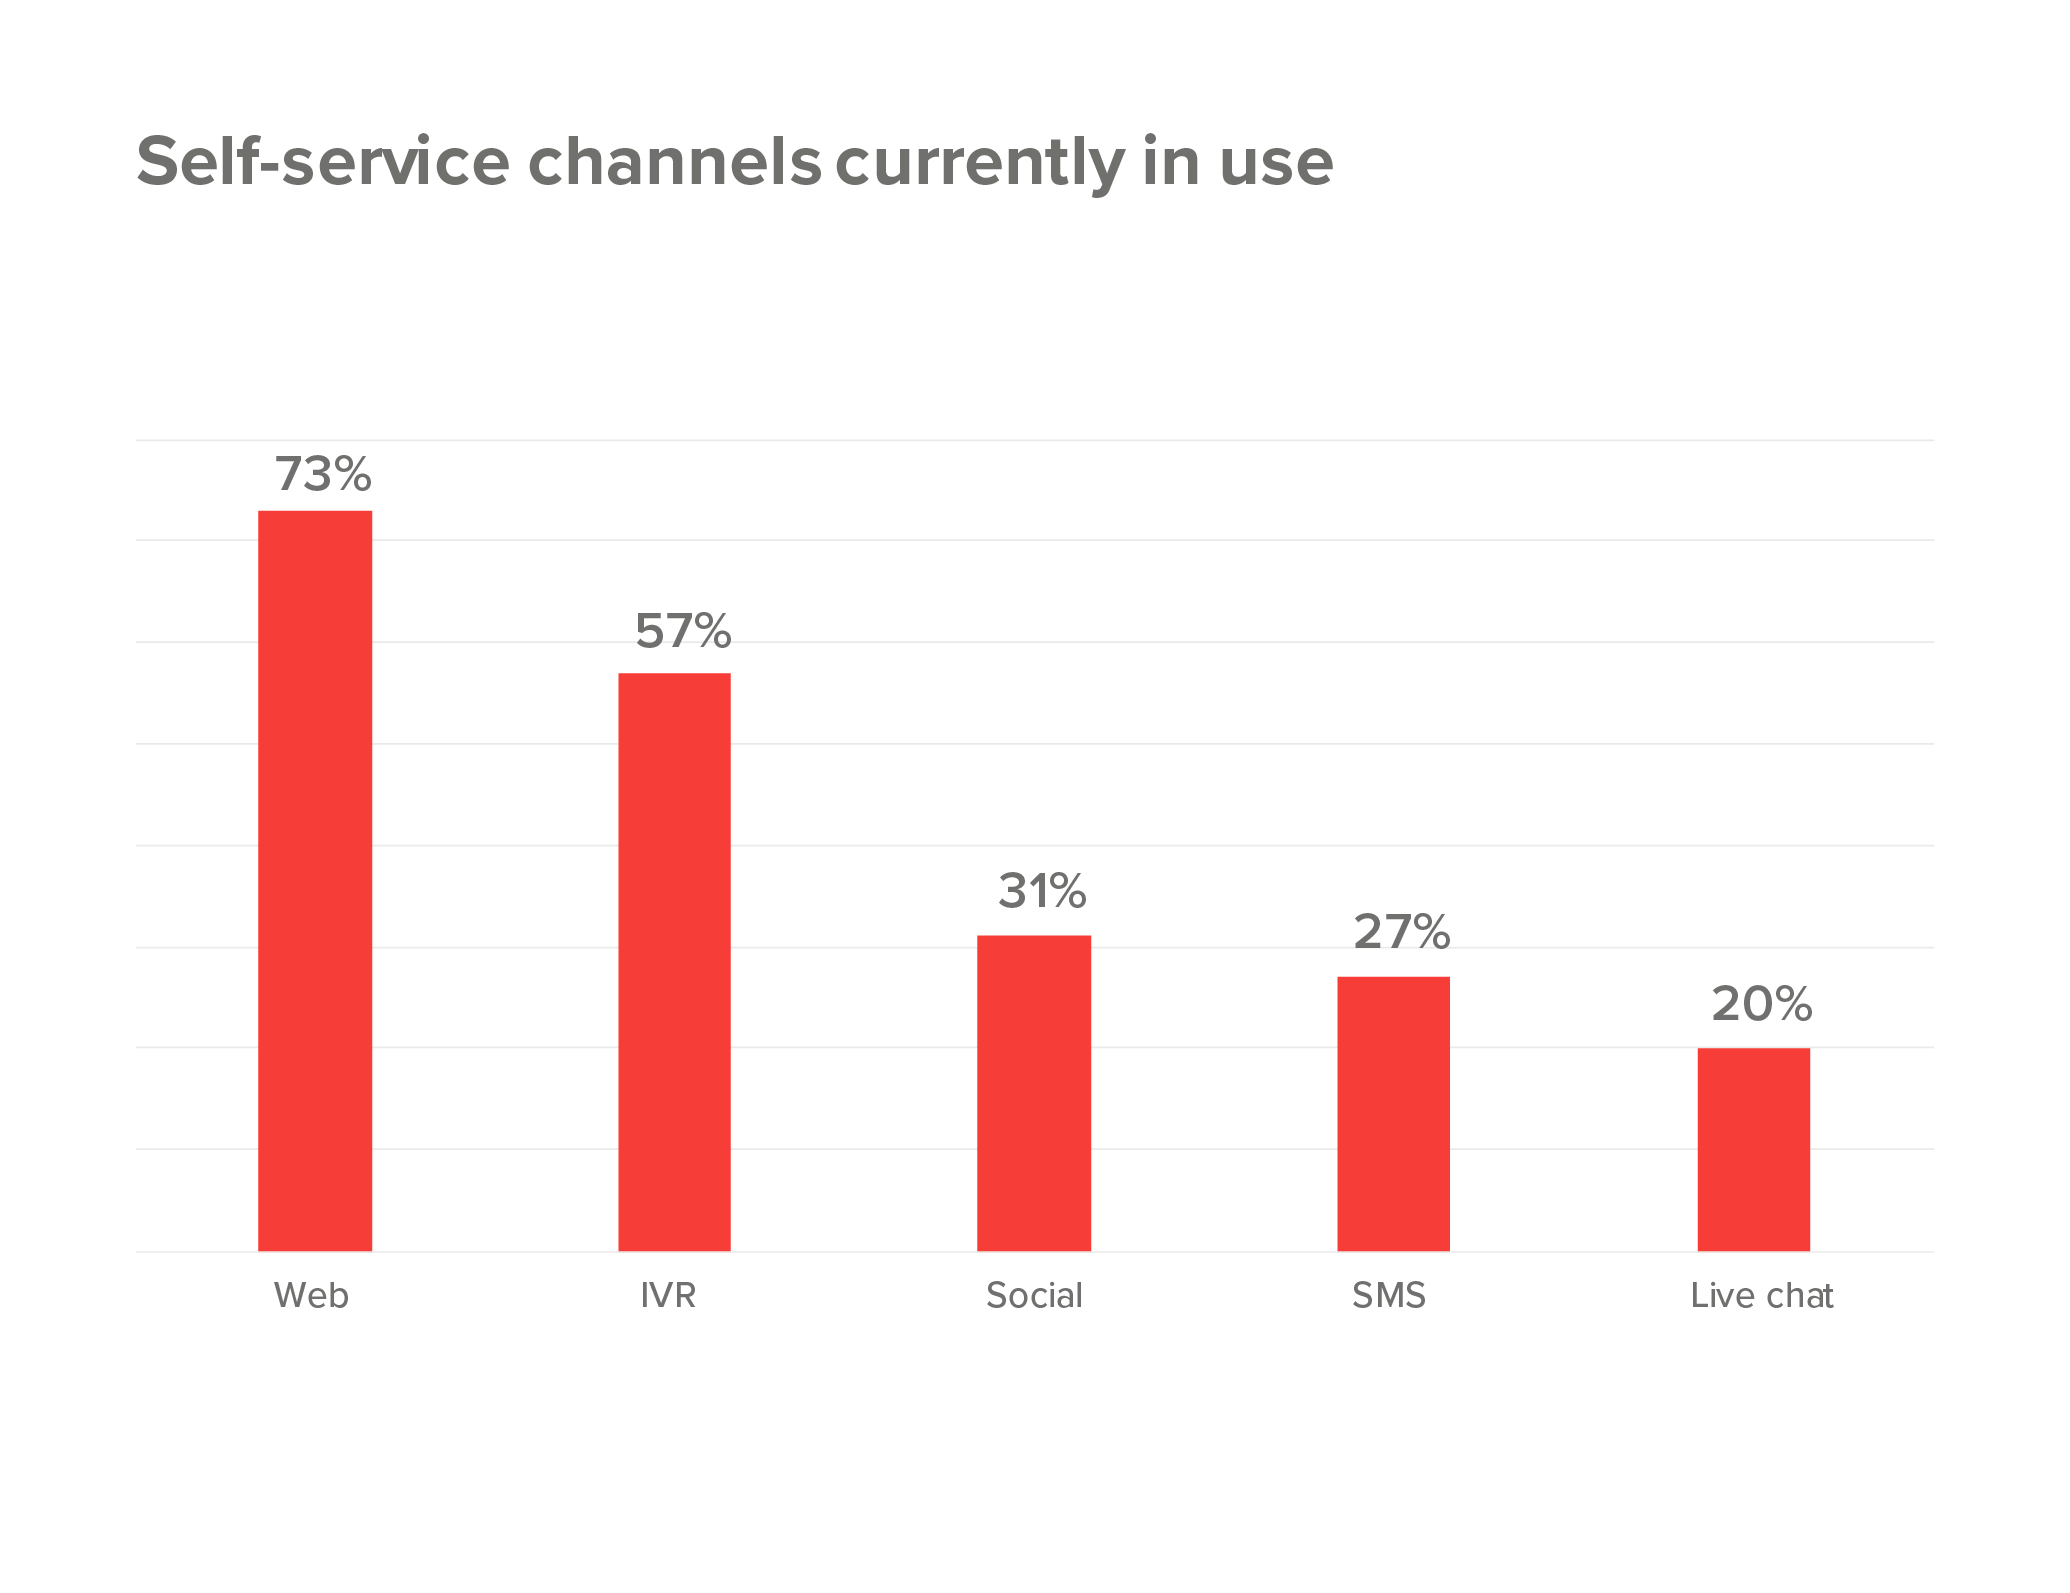 Self-service channels currently in use